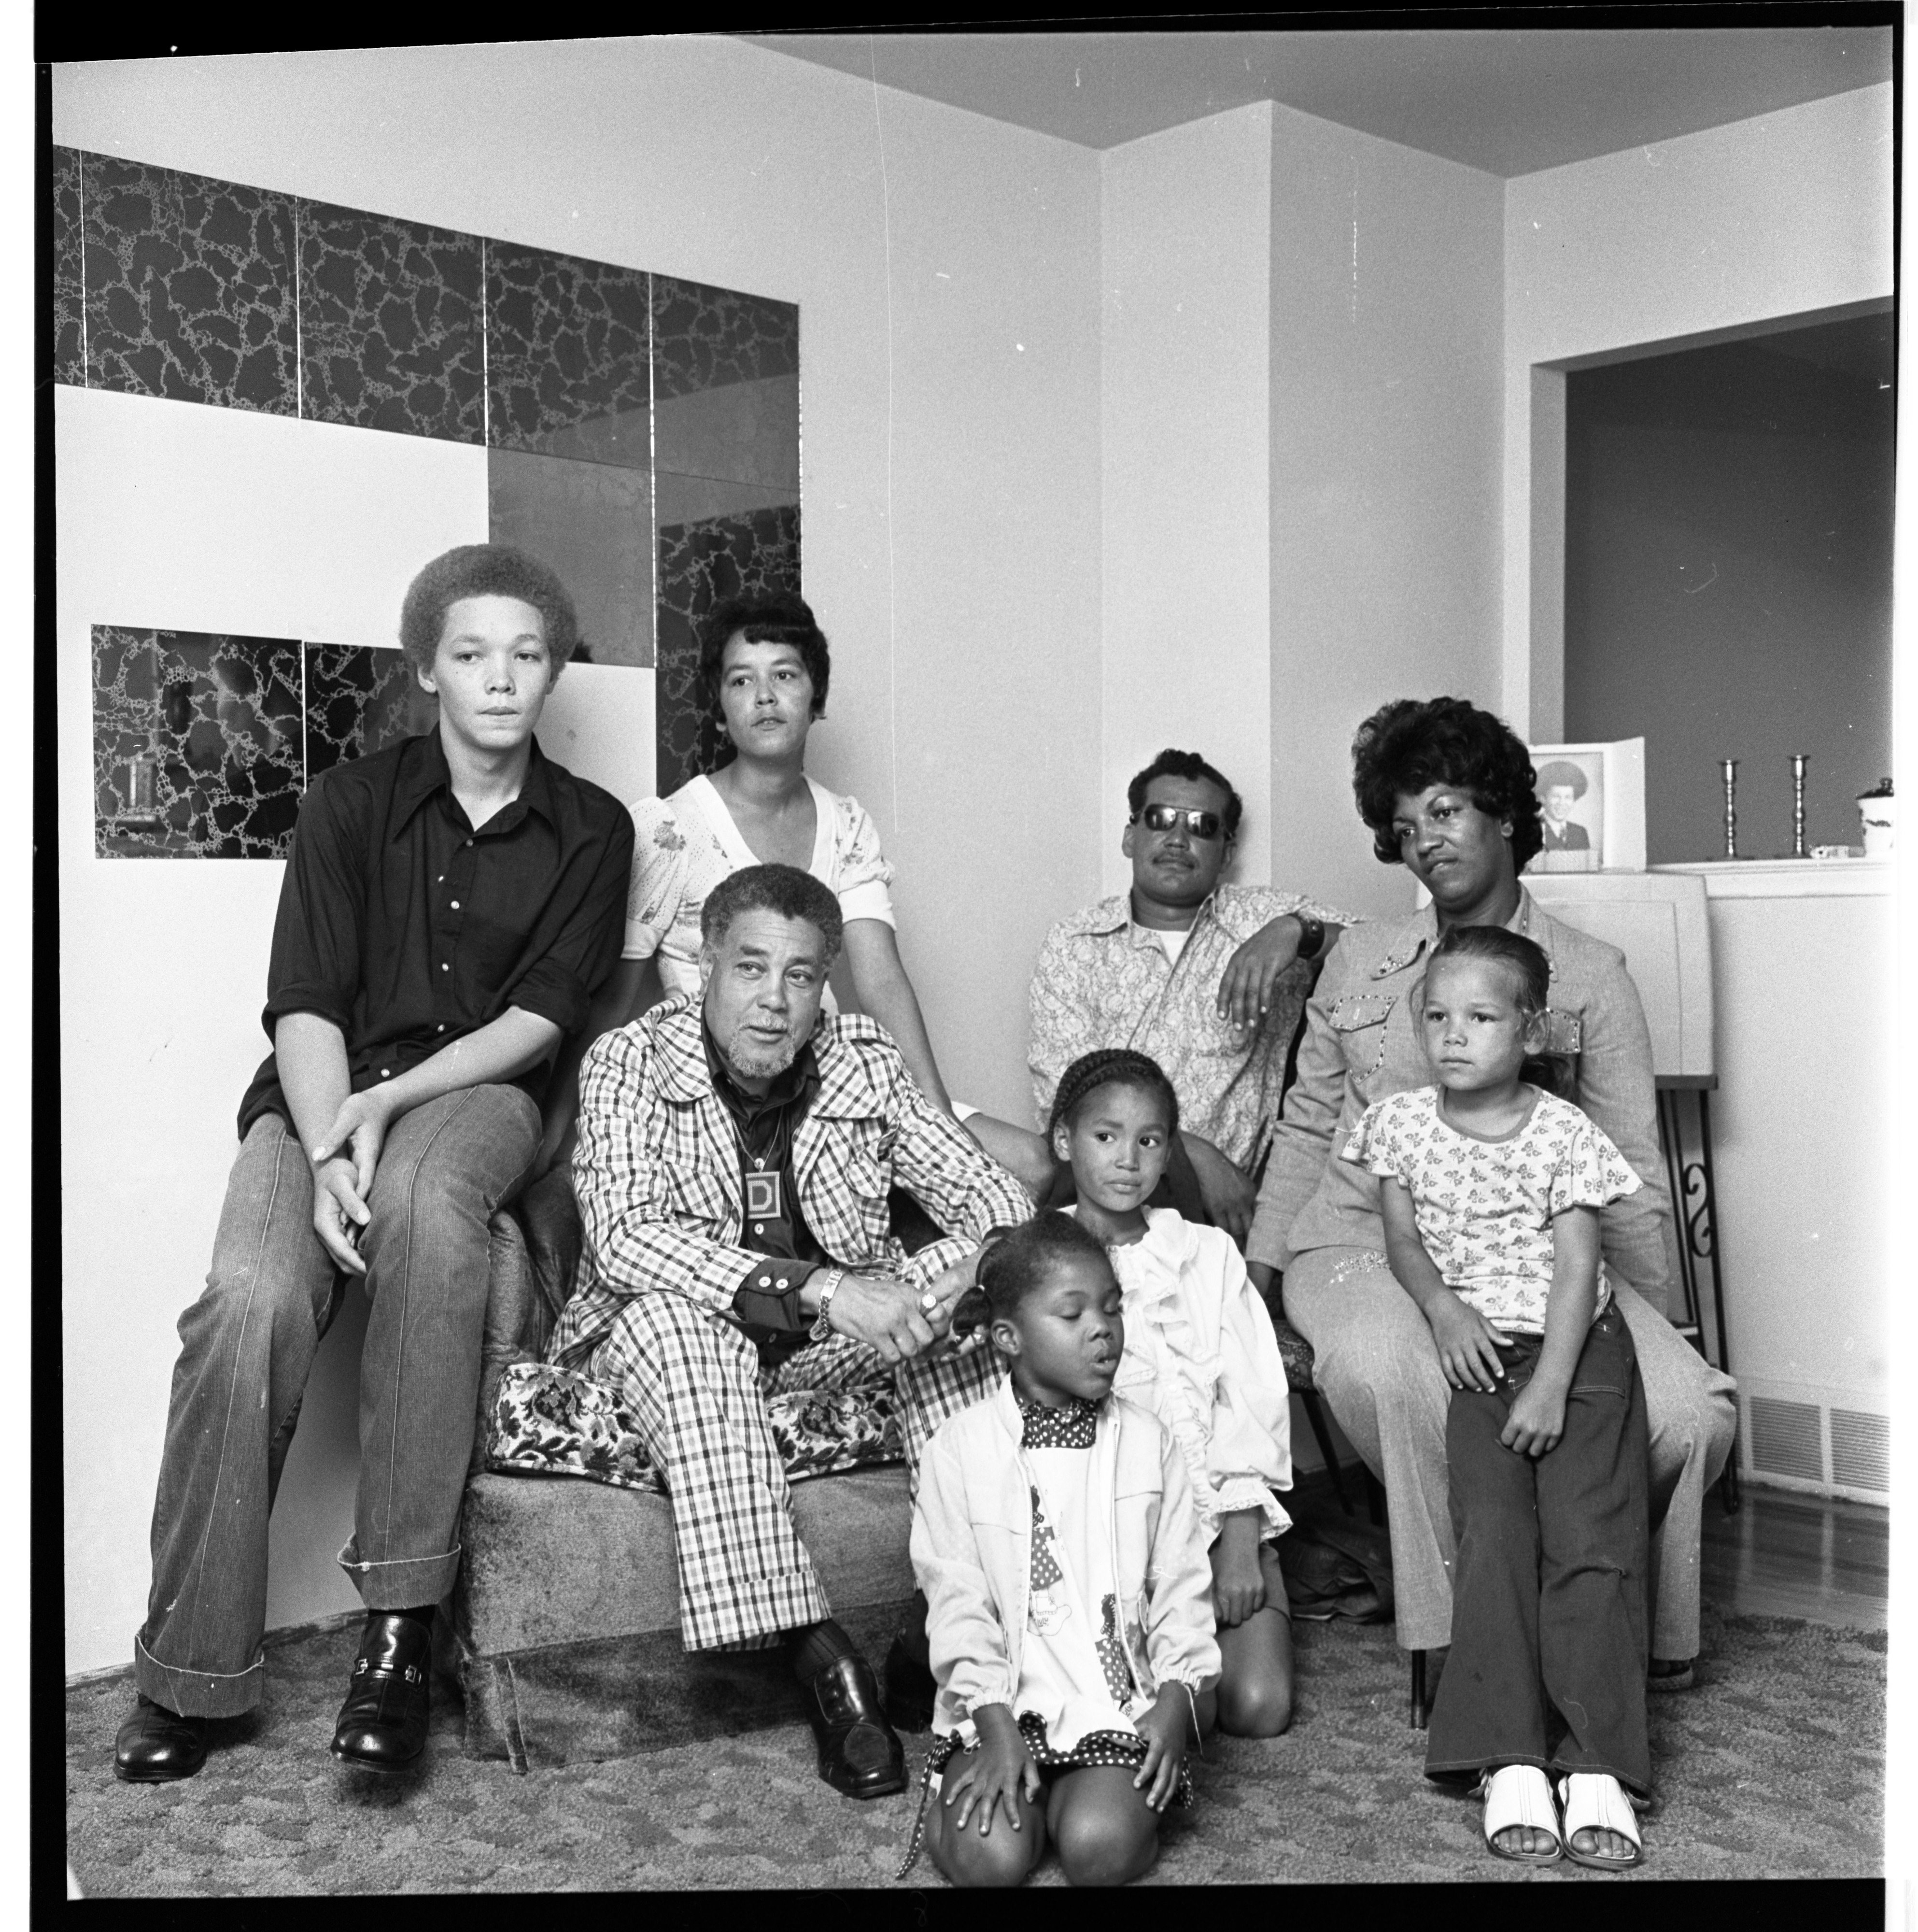 James Duck, Margaret Grisham, and Kenneth Johnson and Family Members, July 1974 image